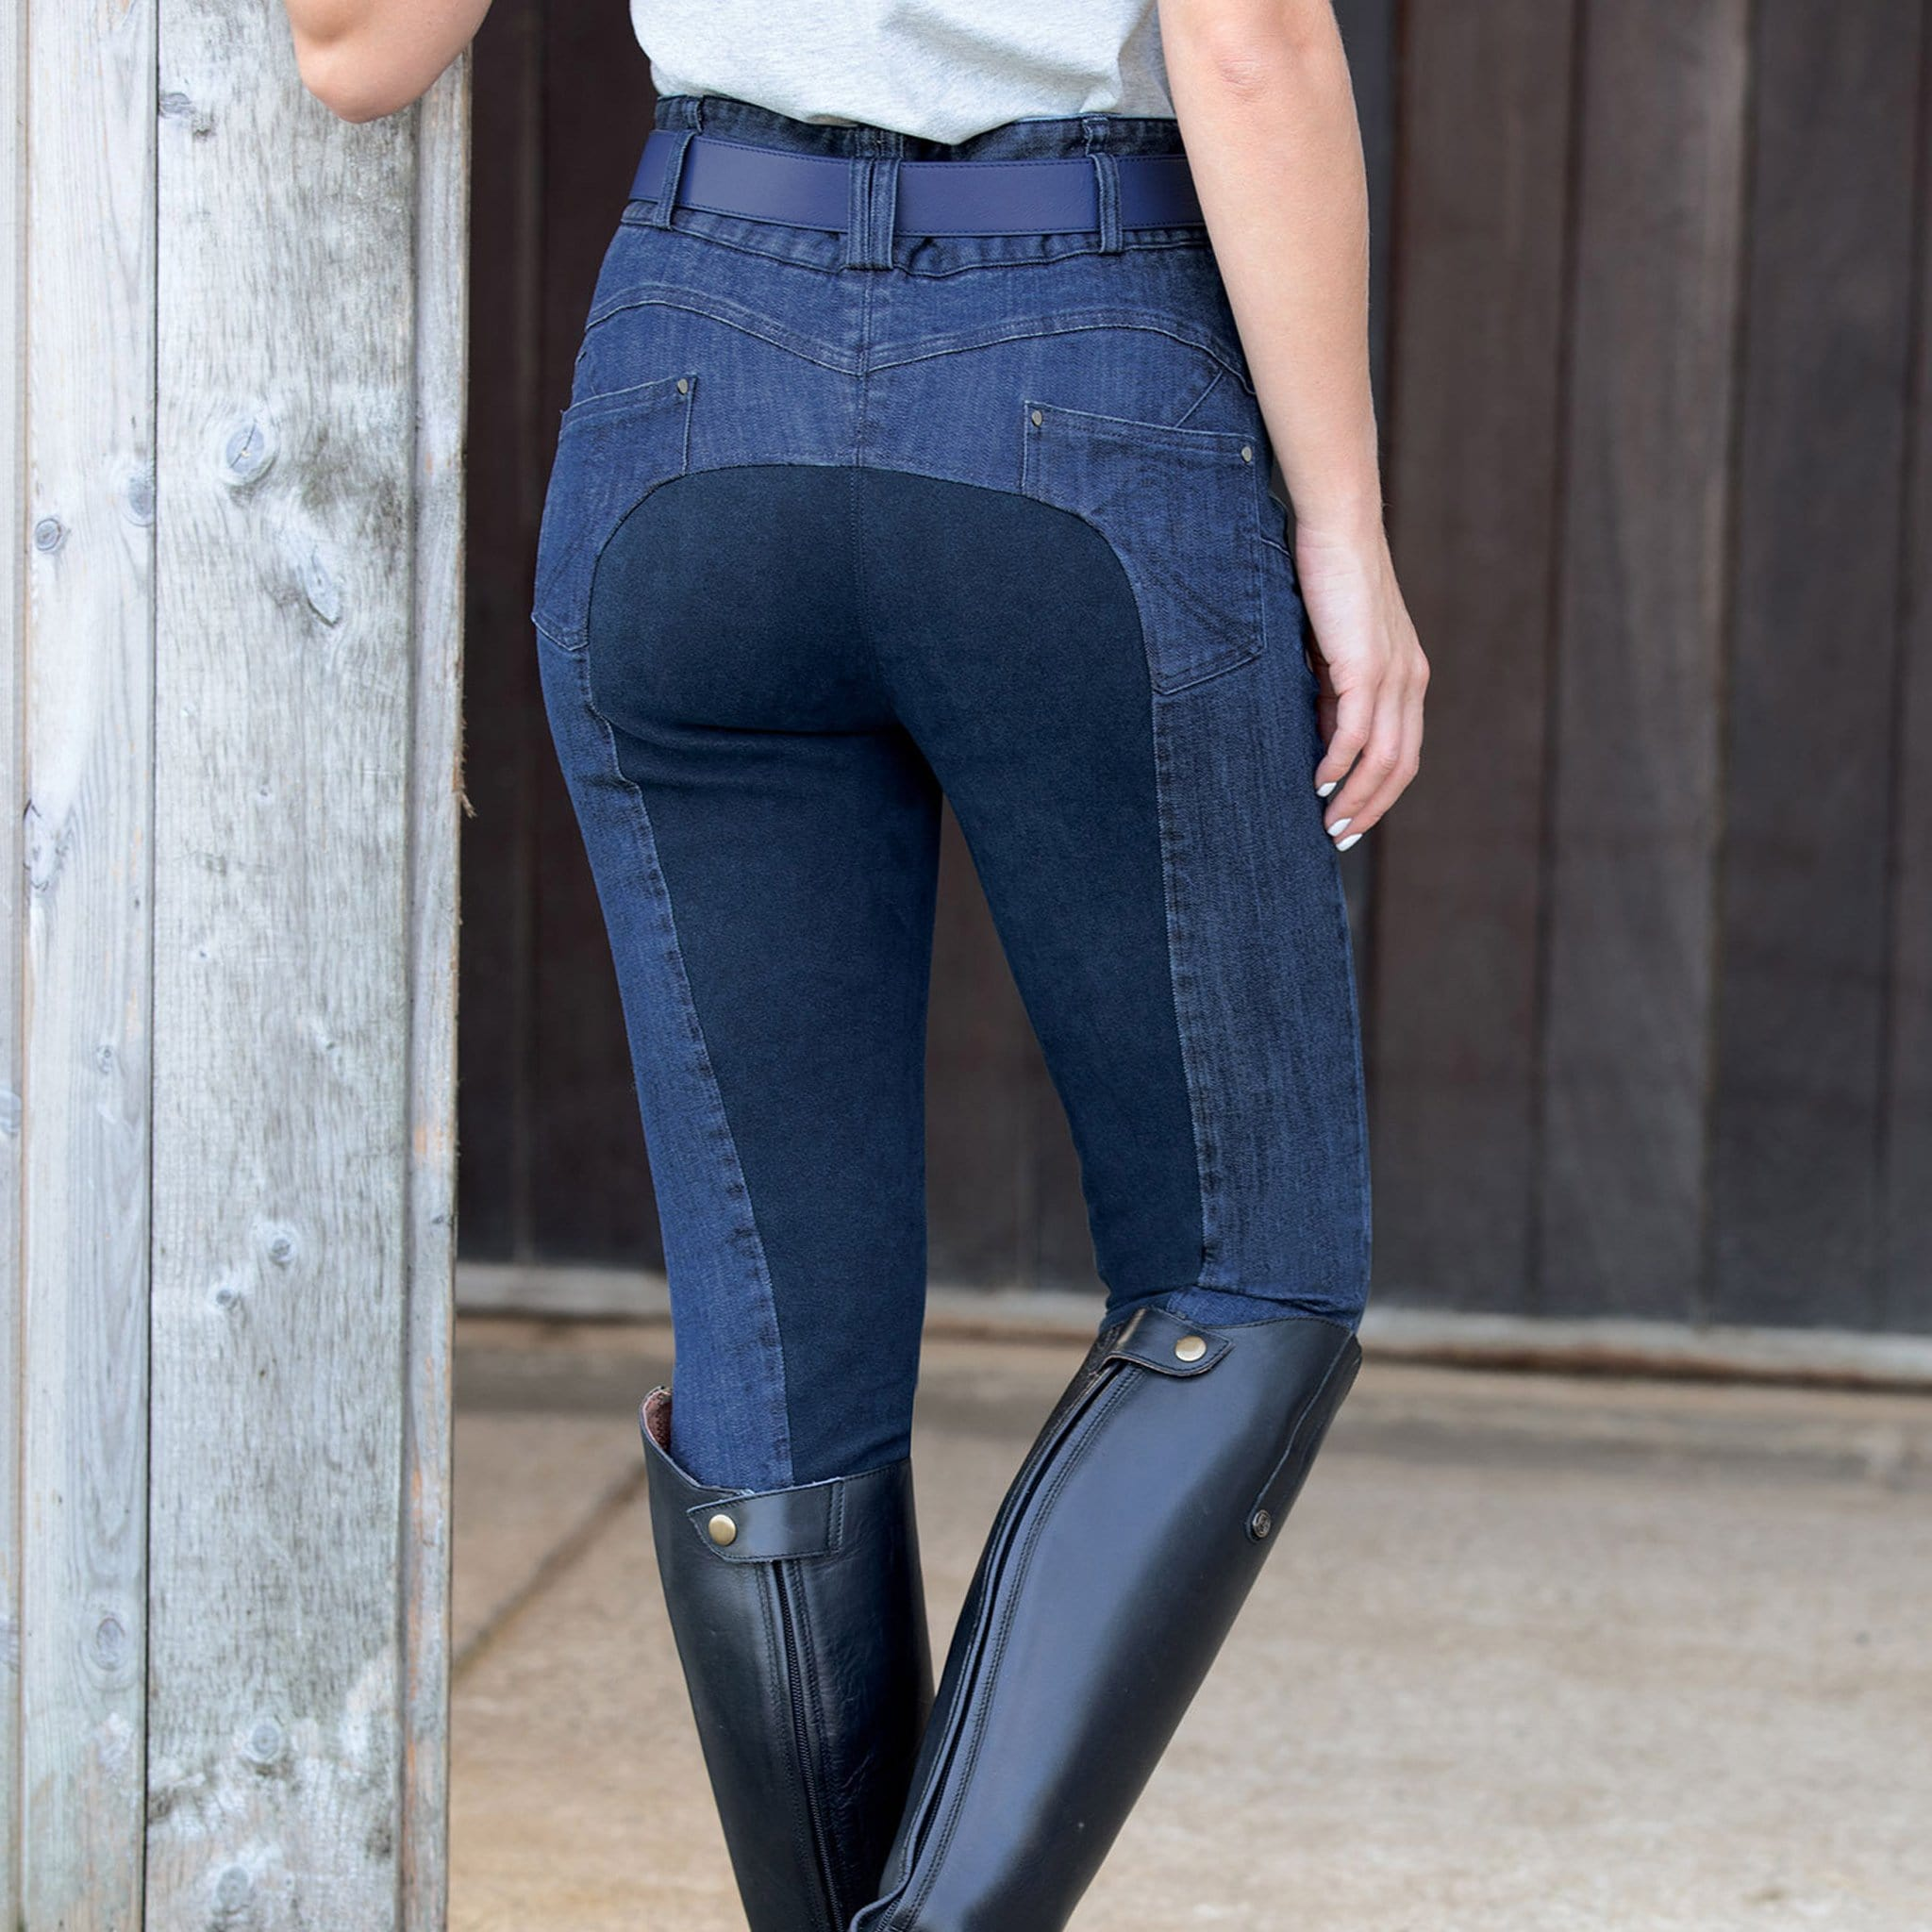 Equetech Denim Shaper Alos Full Seat Breeches DSB Dark Blue Navy On Model Rear